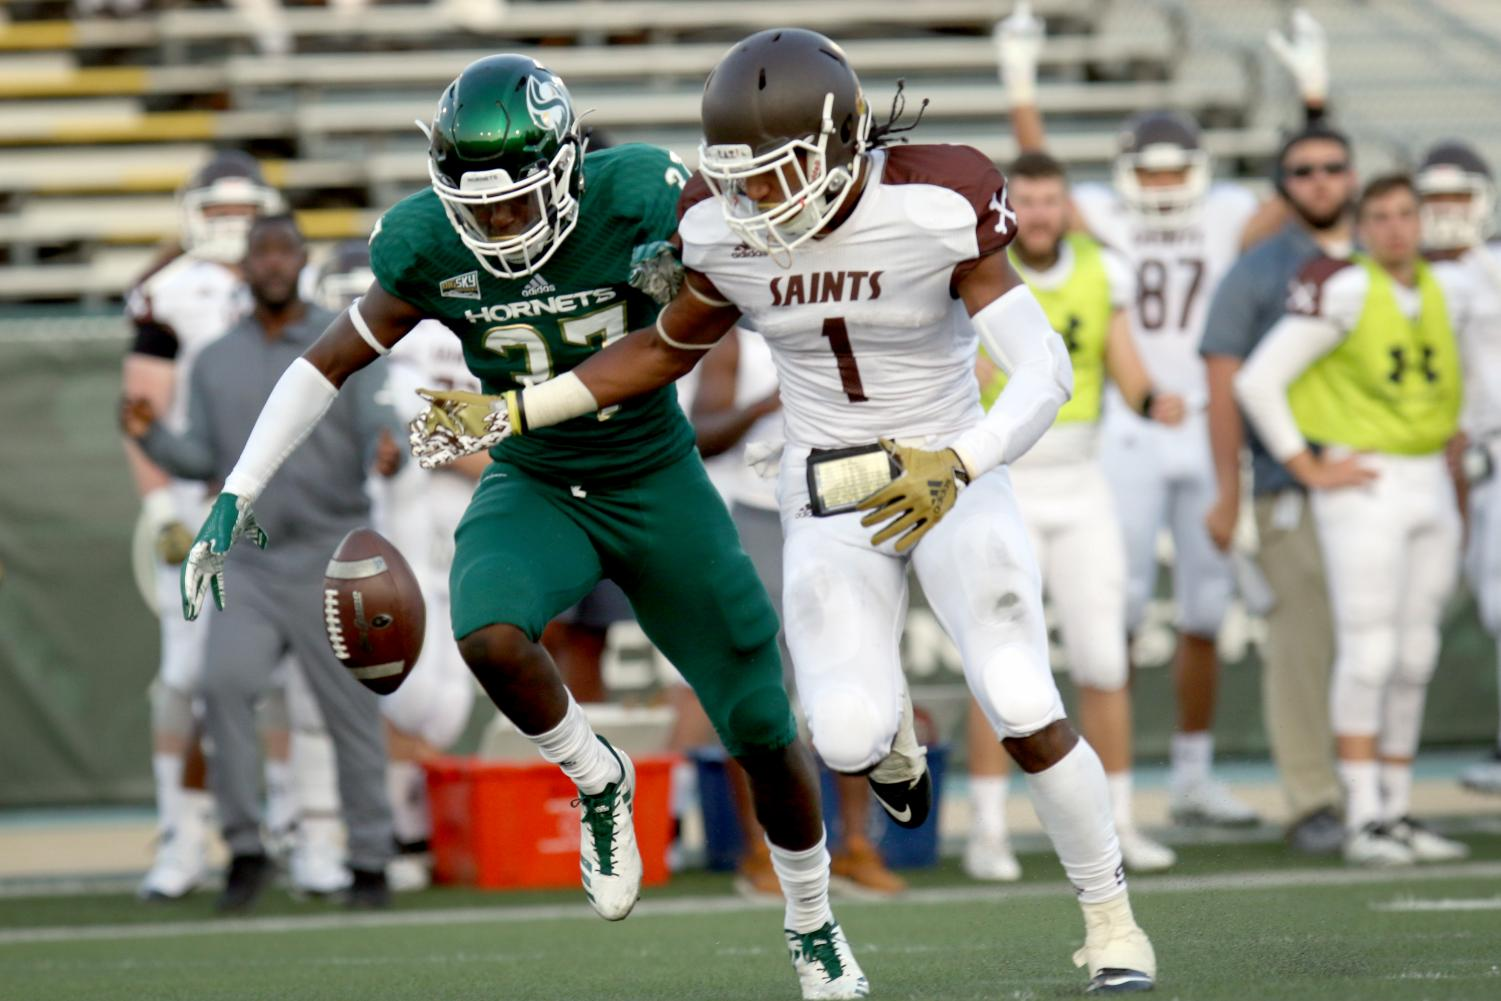 Sacramento State sophomore Daron Bland and Saint Francis wide receiver Ray Vallot watch a pass hit the ground during the first quarter of the Hornets 55-7 win on Sept.1 at Hornets Stadium.